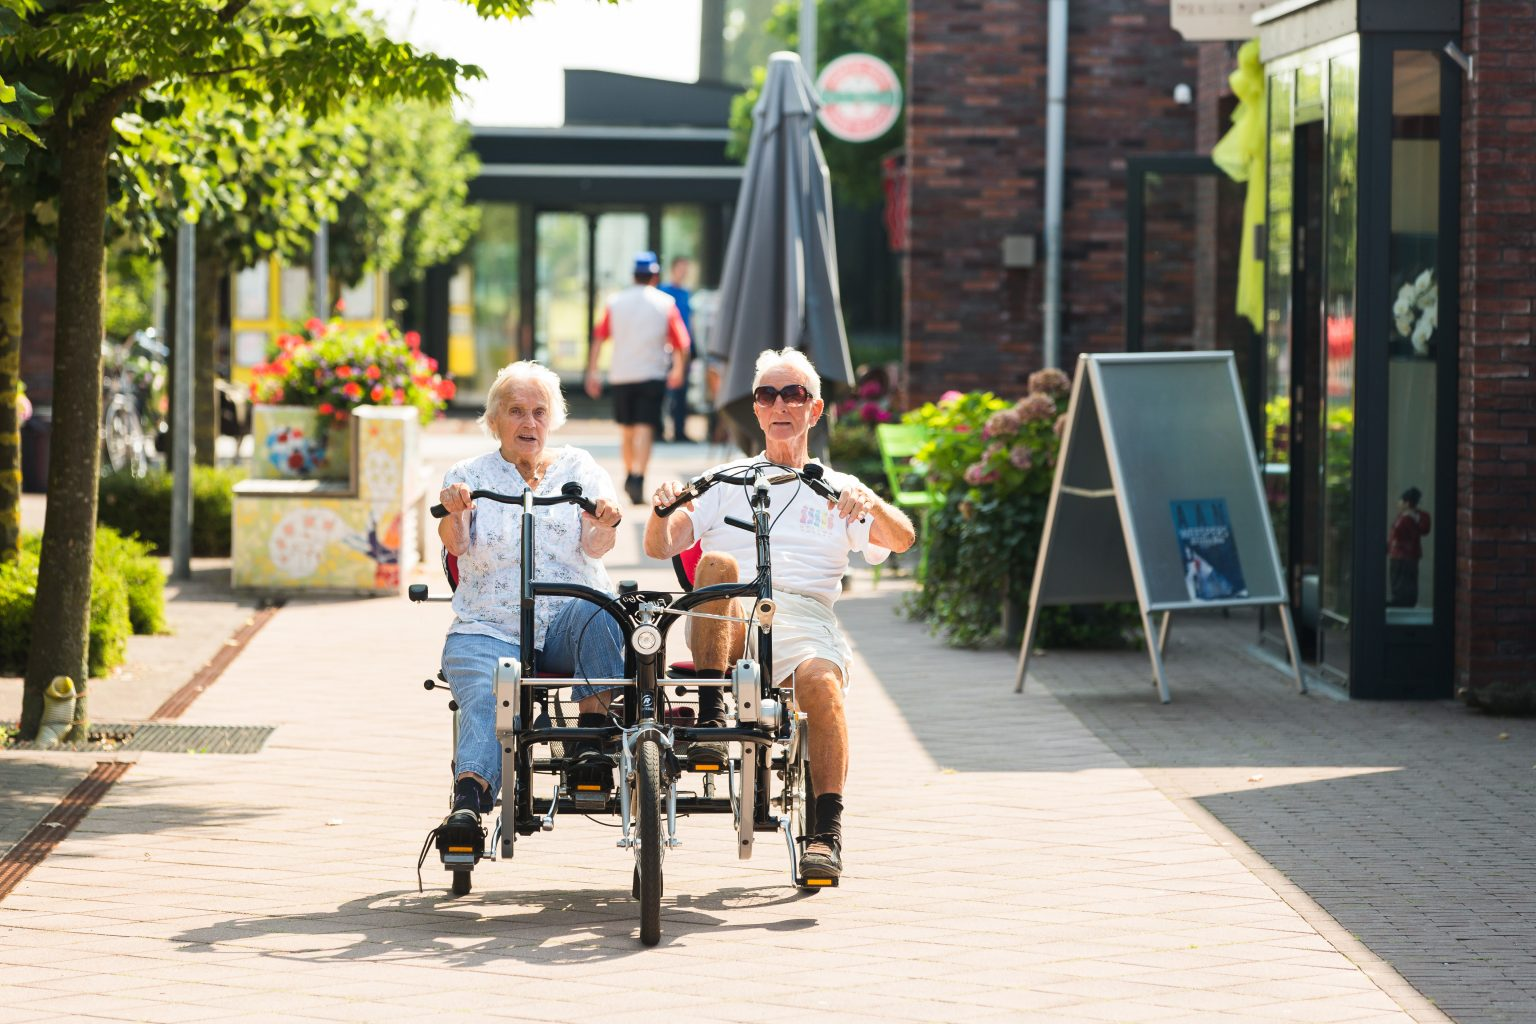 Image: Two residents of Hogeweyk cycling together outside!